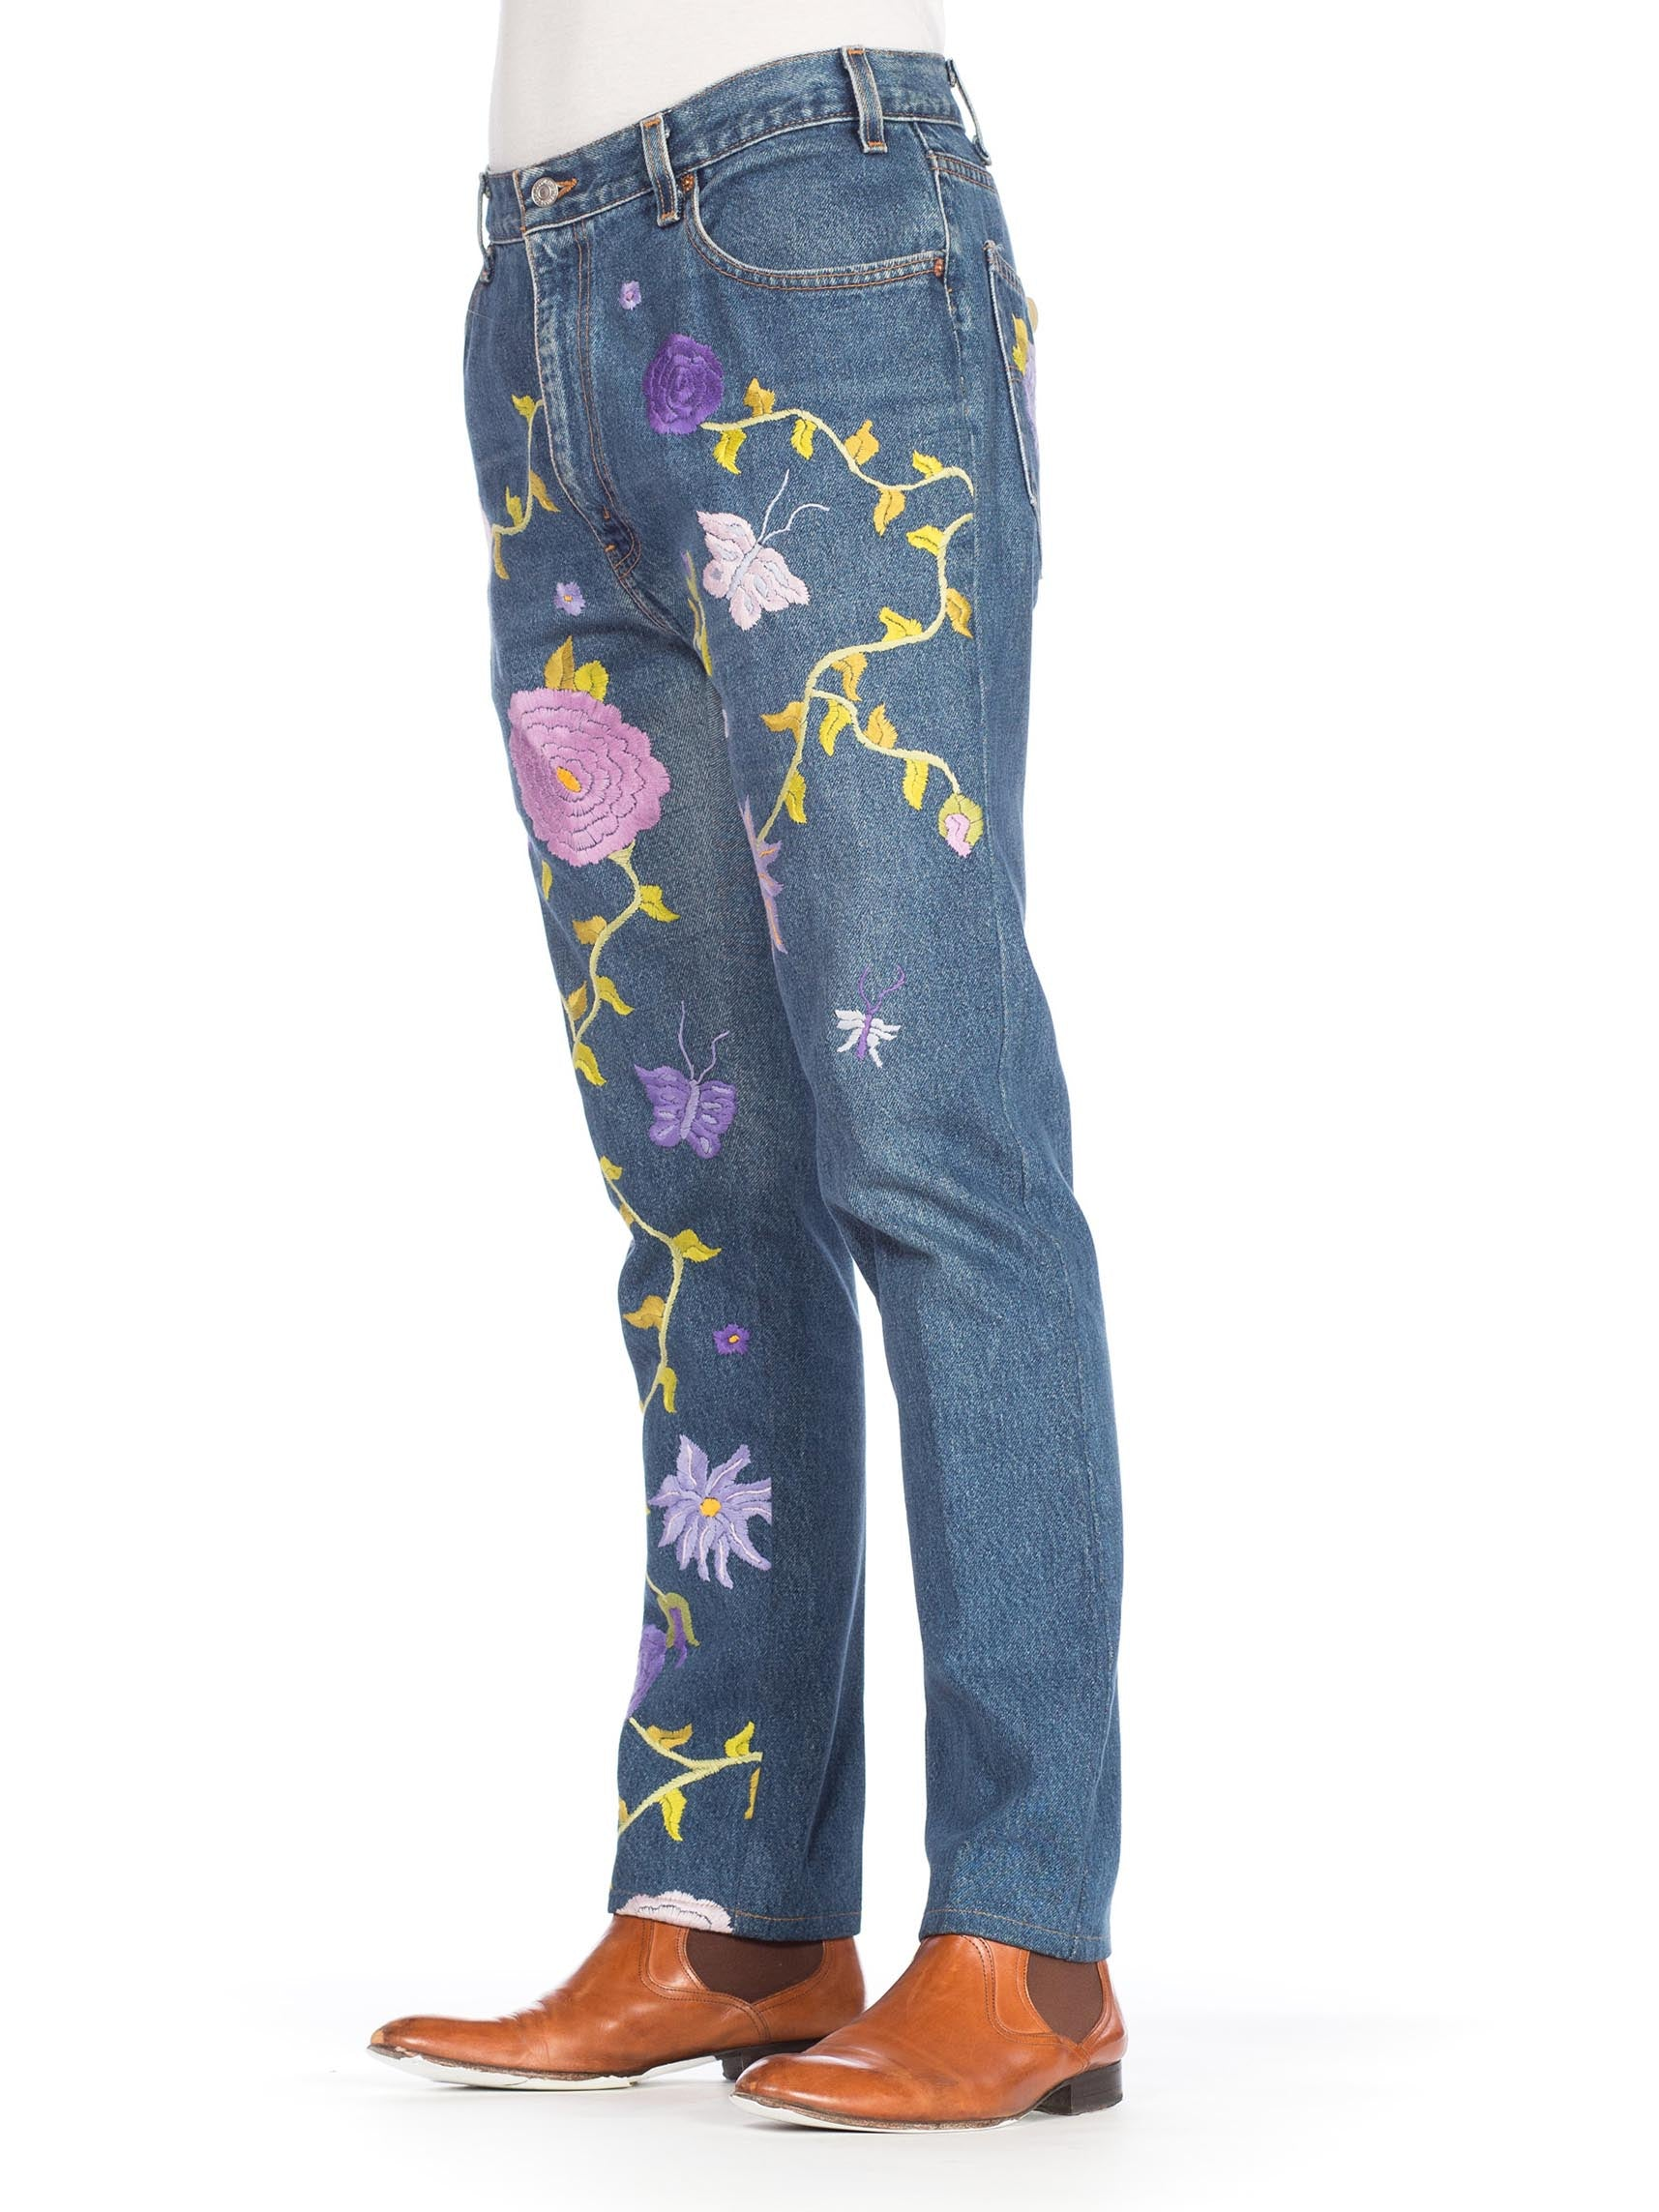 1990S LEVIS Men's Hippie Boho Floral Embroidered Jeans